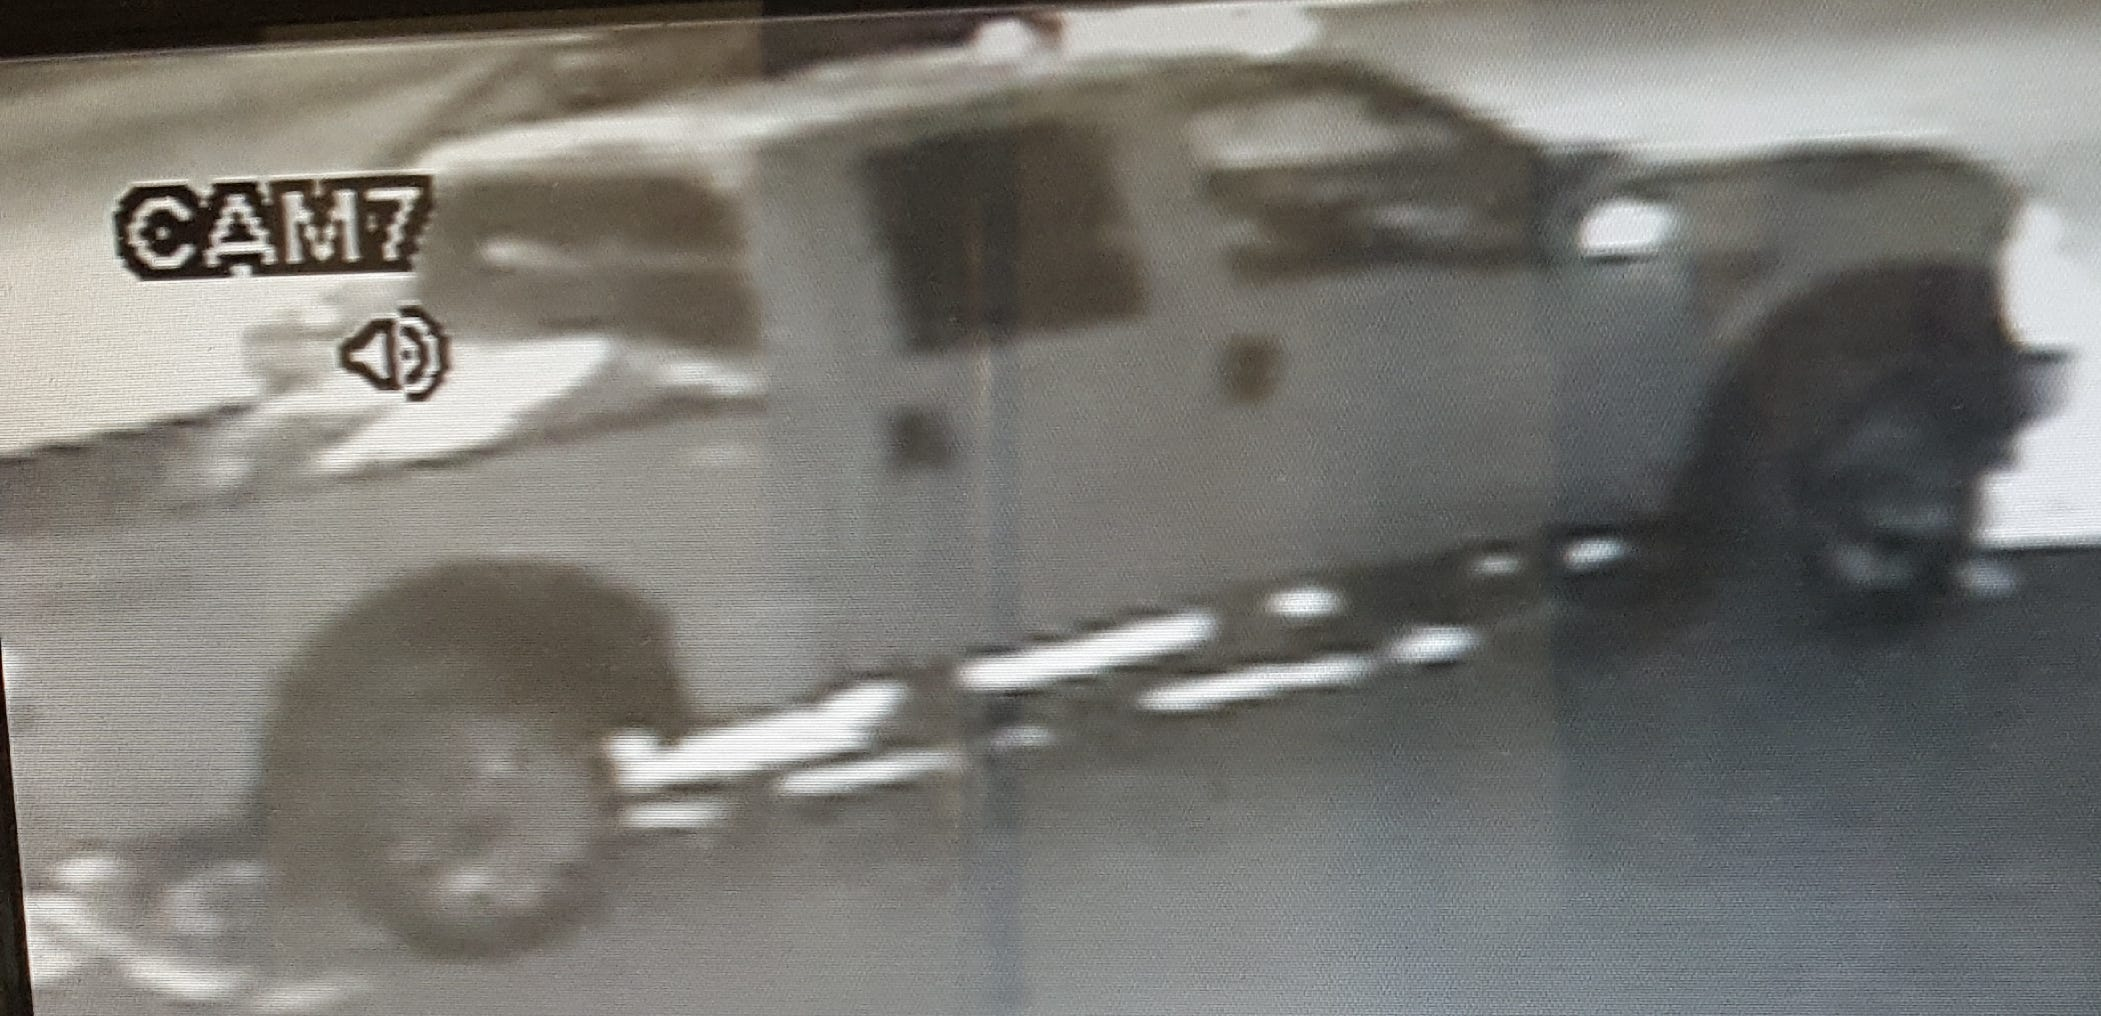 A Ford F-250 is being sought as Broome County Sheriff's deputies investigate a Jan. 21, 2019 robbery at a Dunkin Donuts in Endwell.